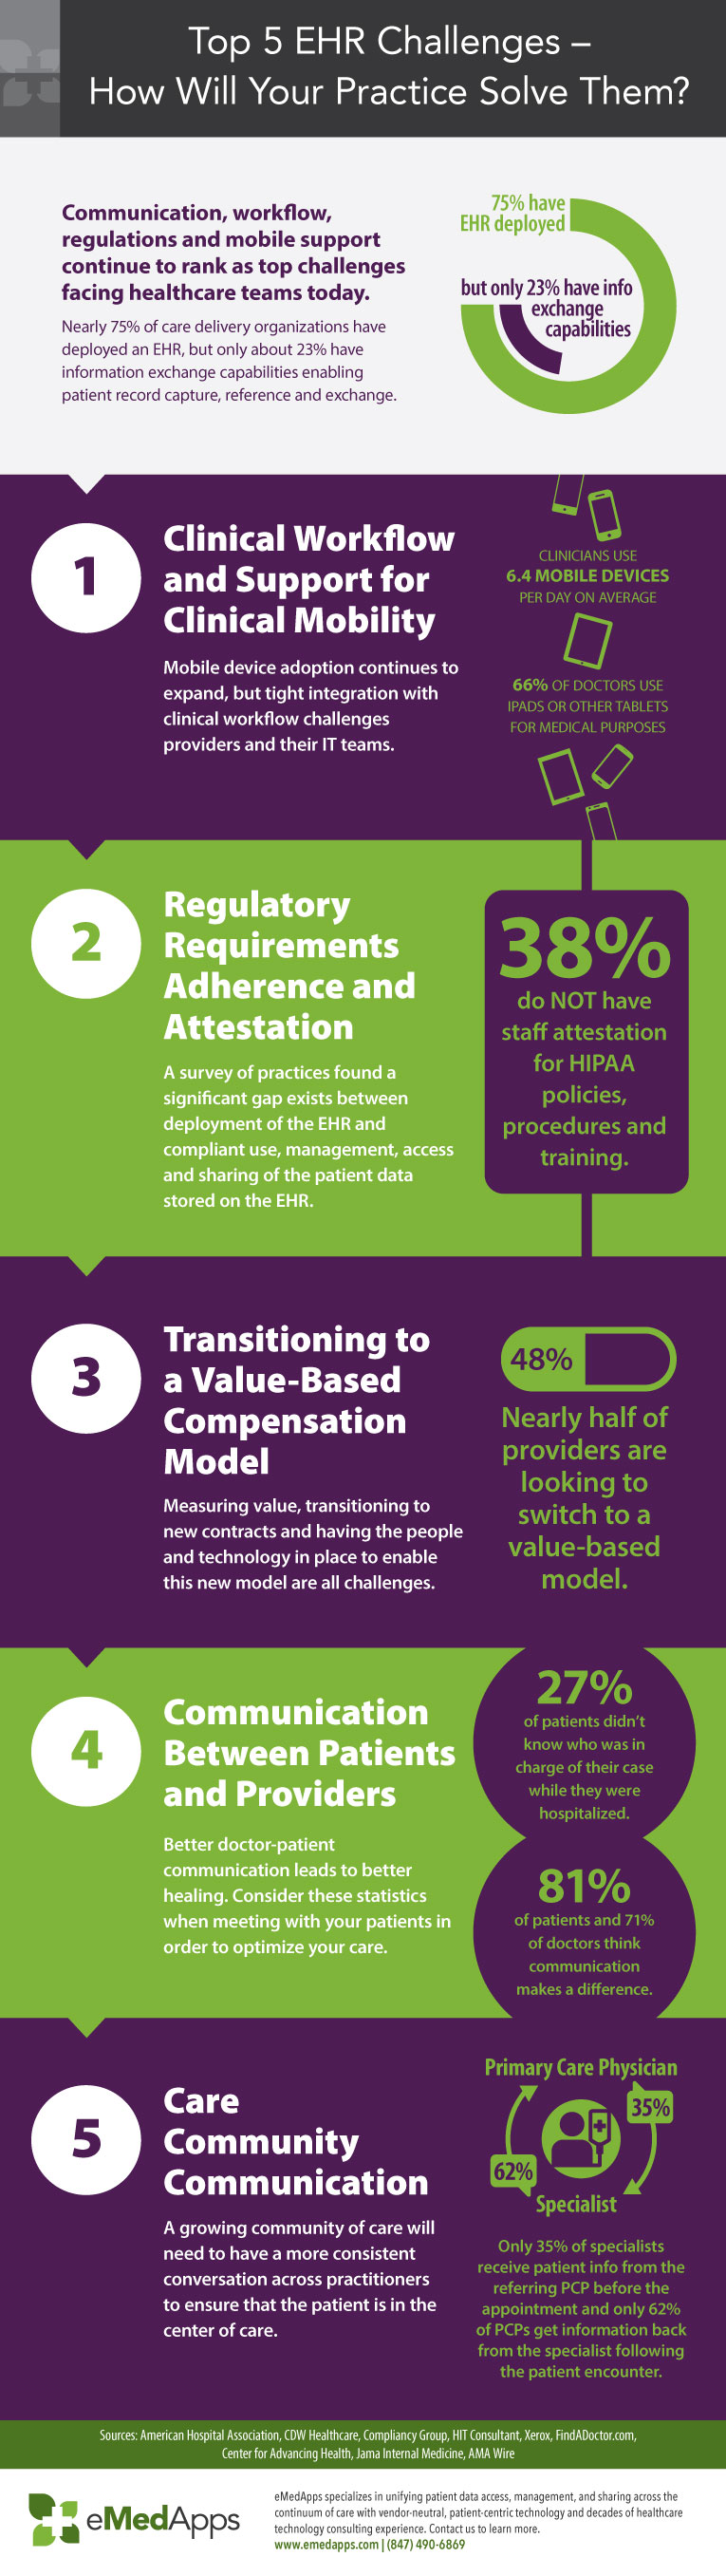 Top 5 EHR Challenges